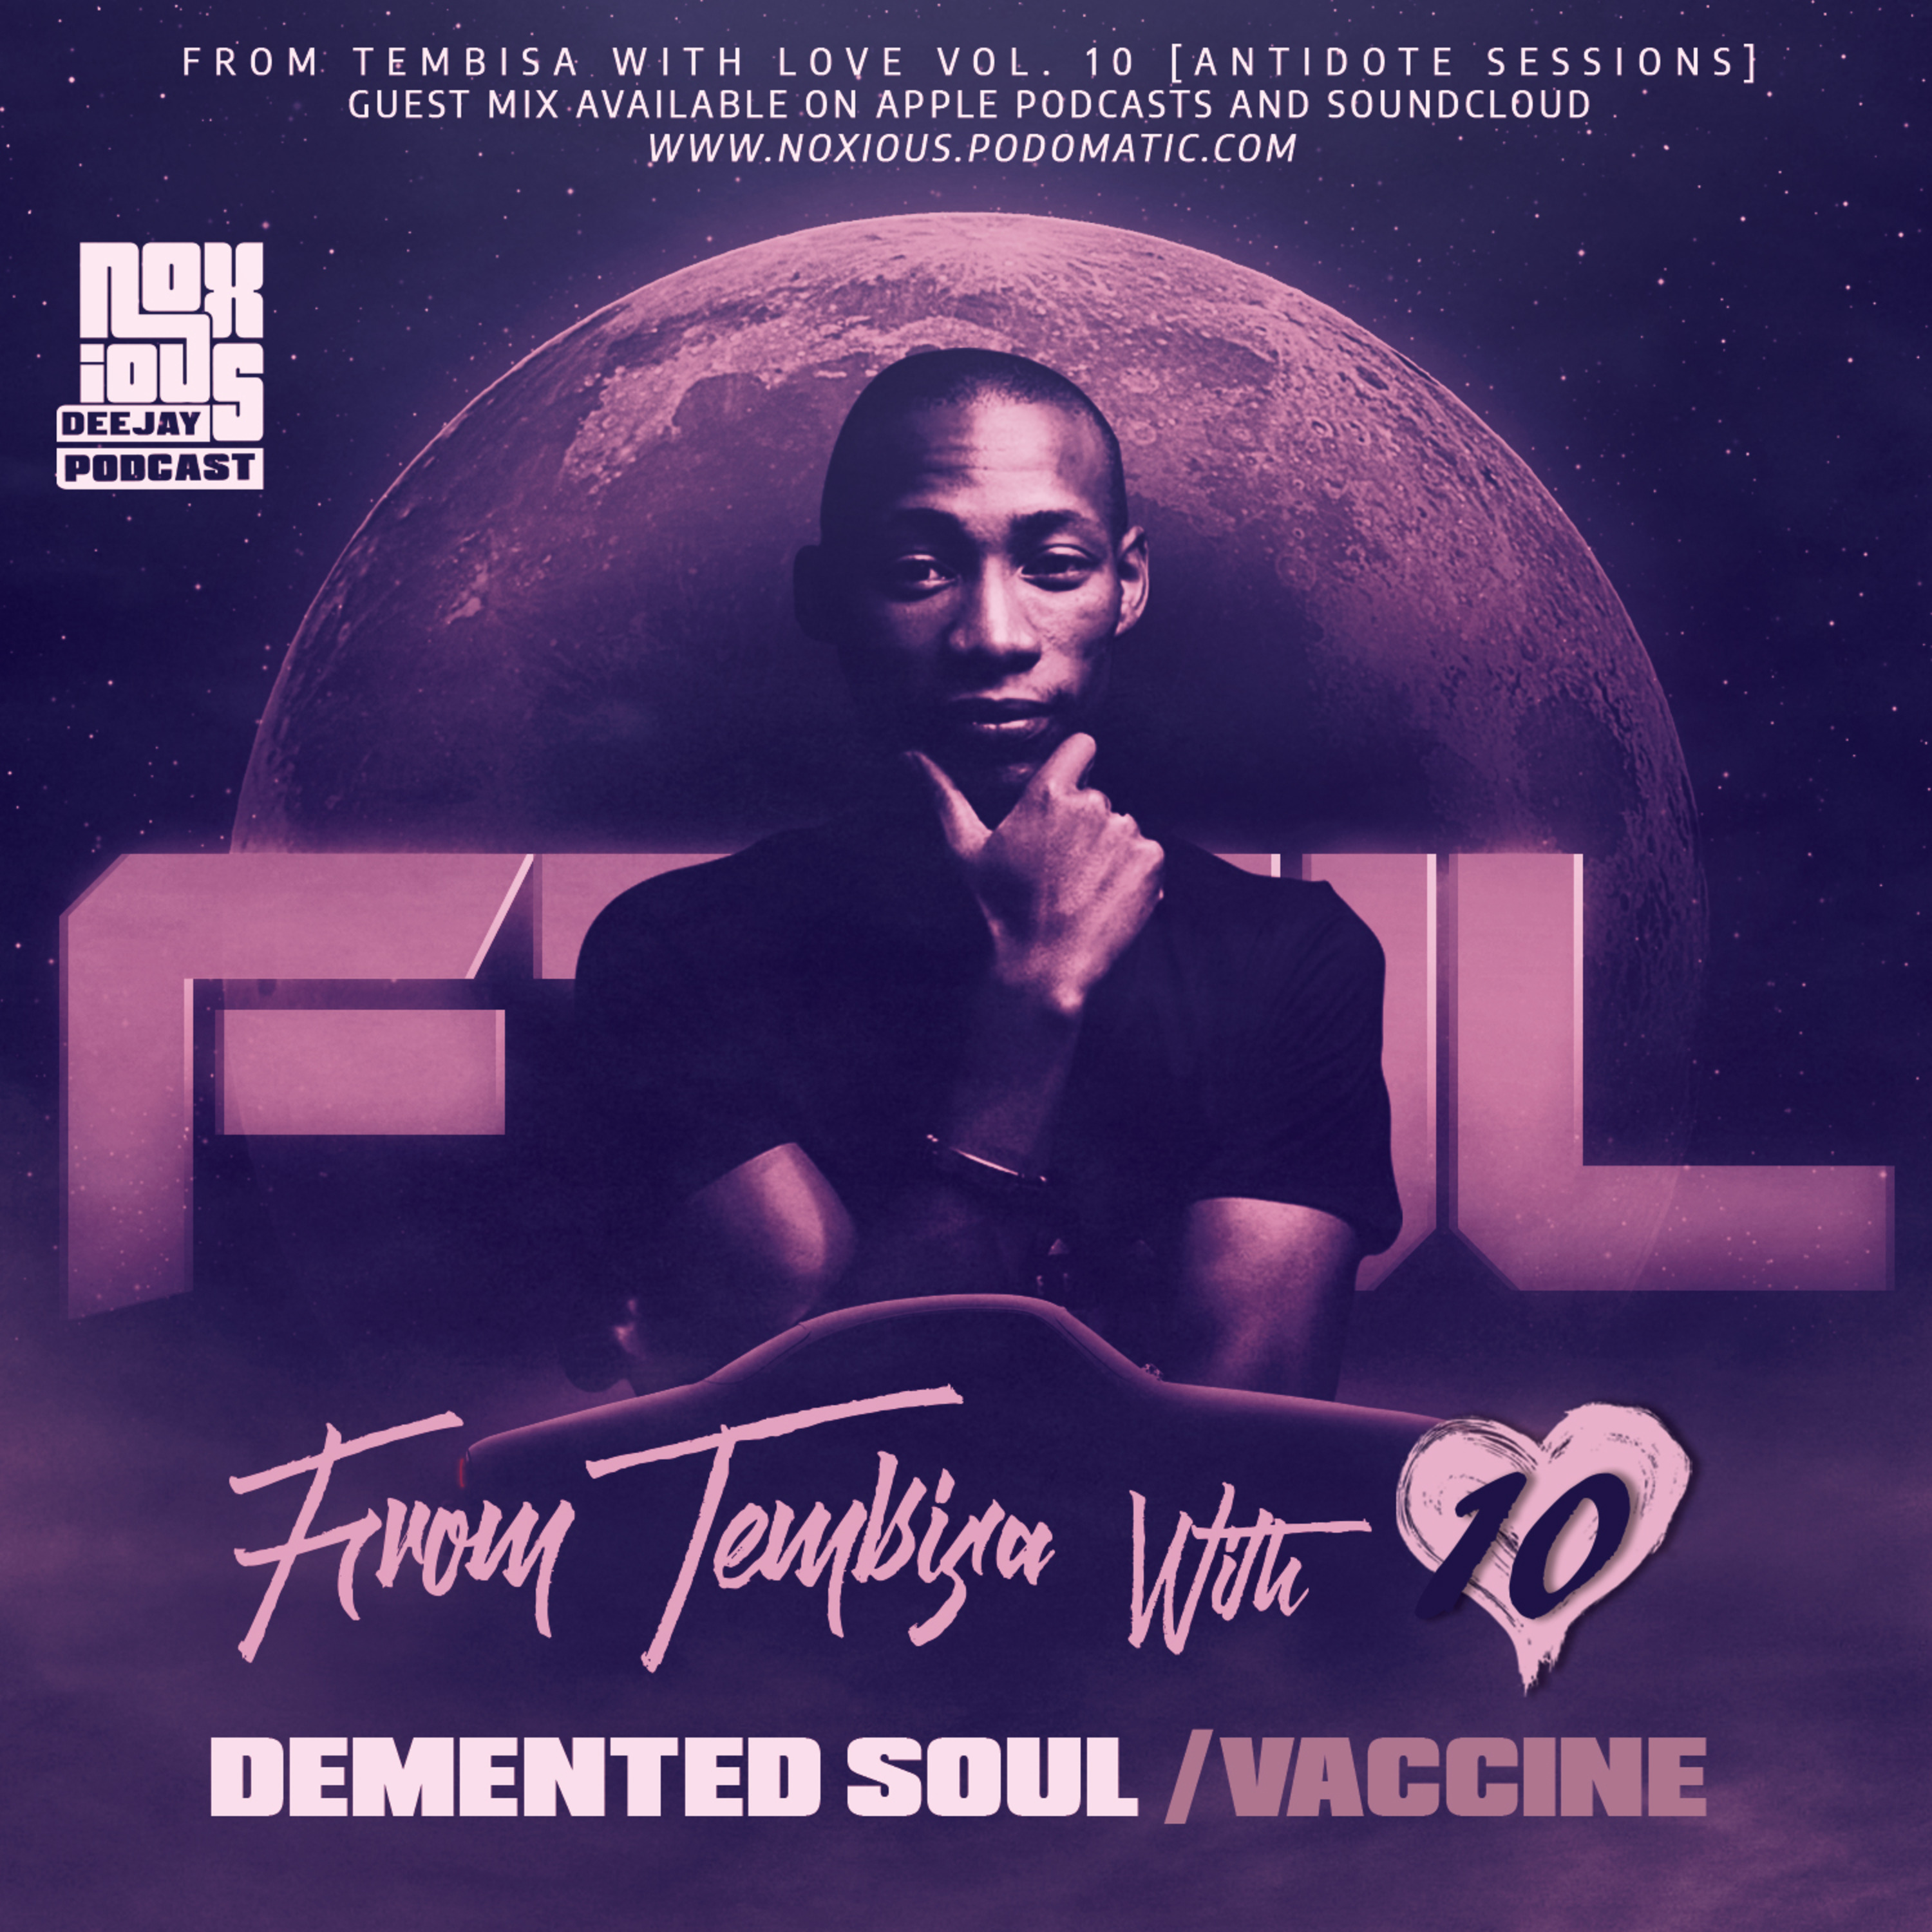 FTWL10 [Antidote Sessions] Demented Soul Vaccine